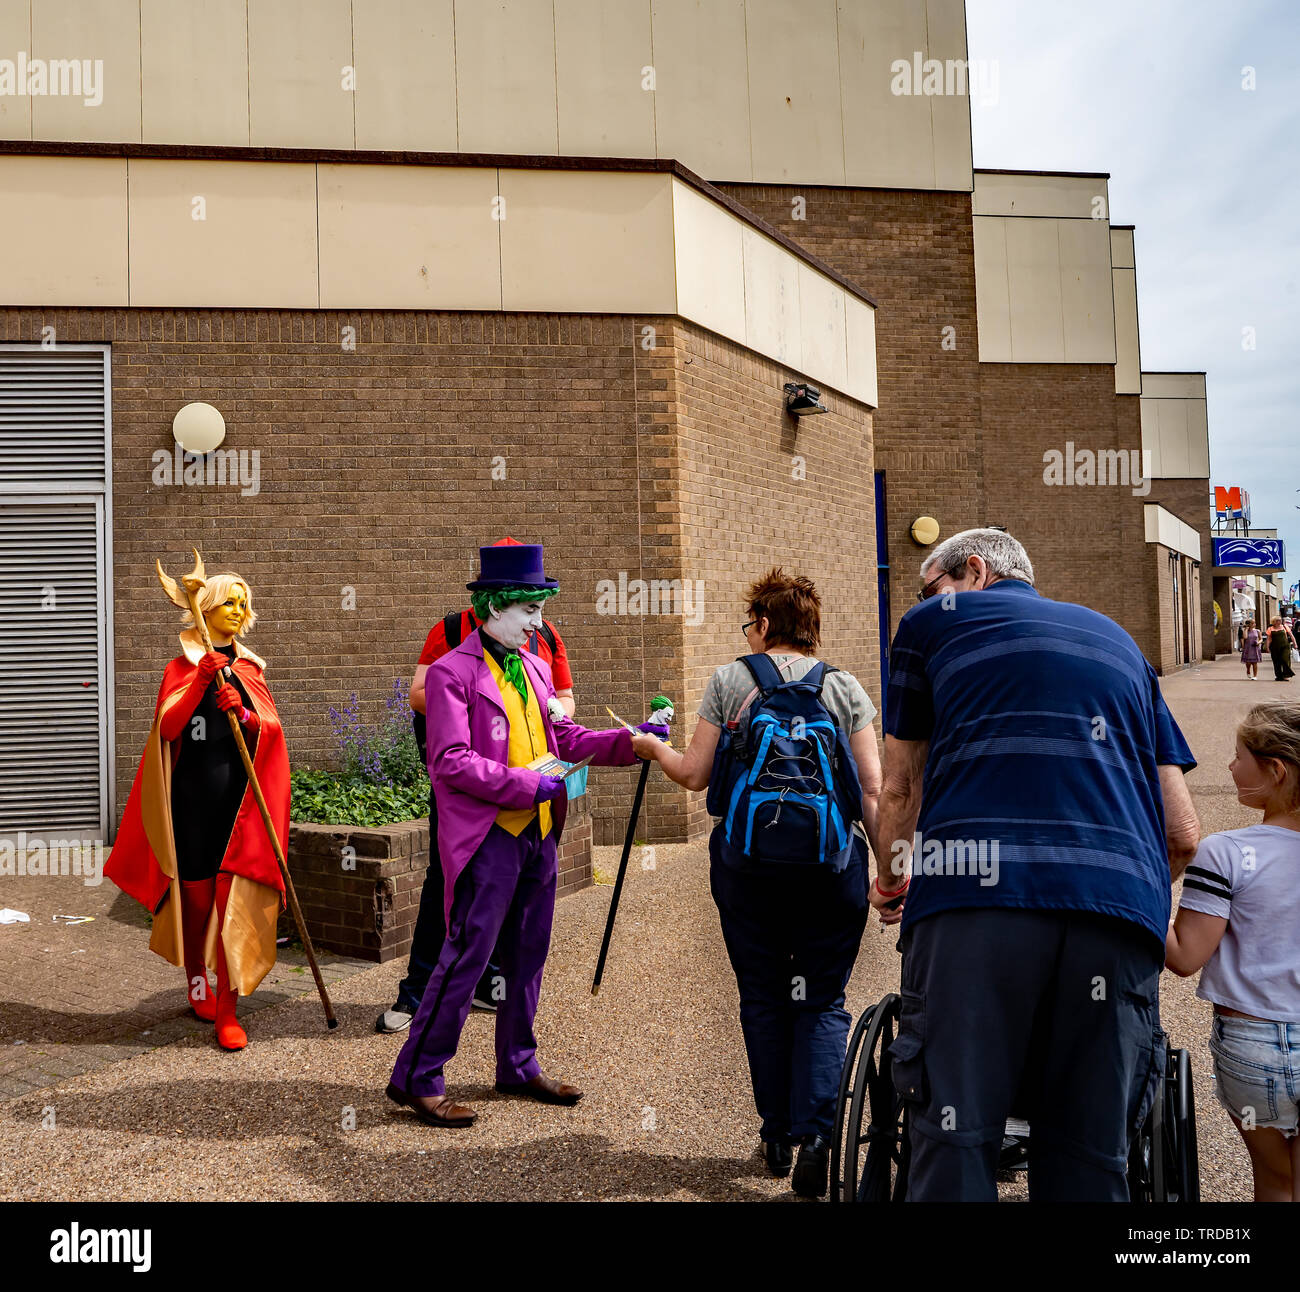 Great Yarmouth Comicon 2019 – The Joker, Mario and a super heroine outside the entrance of the Comicon event in the seaside town of Great Yarmouth - Stock Image